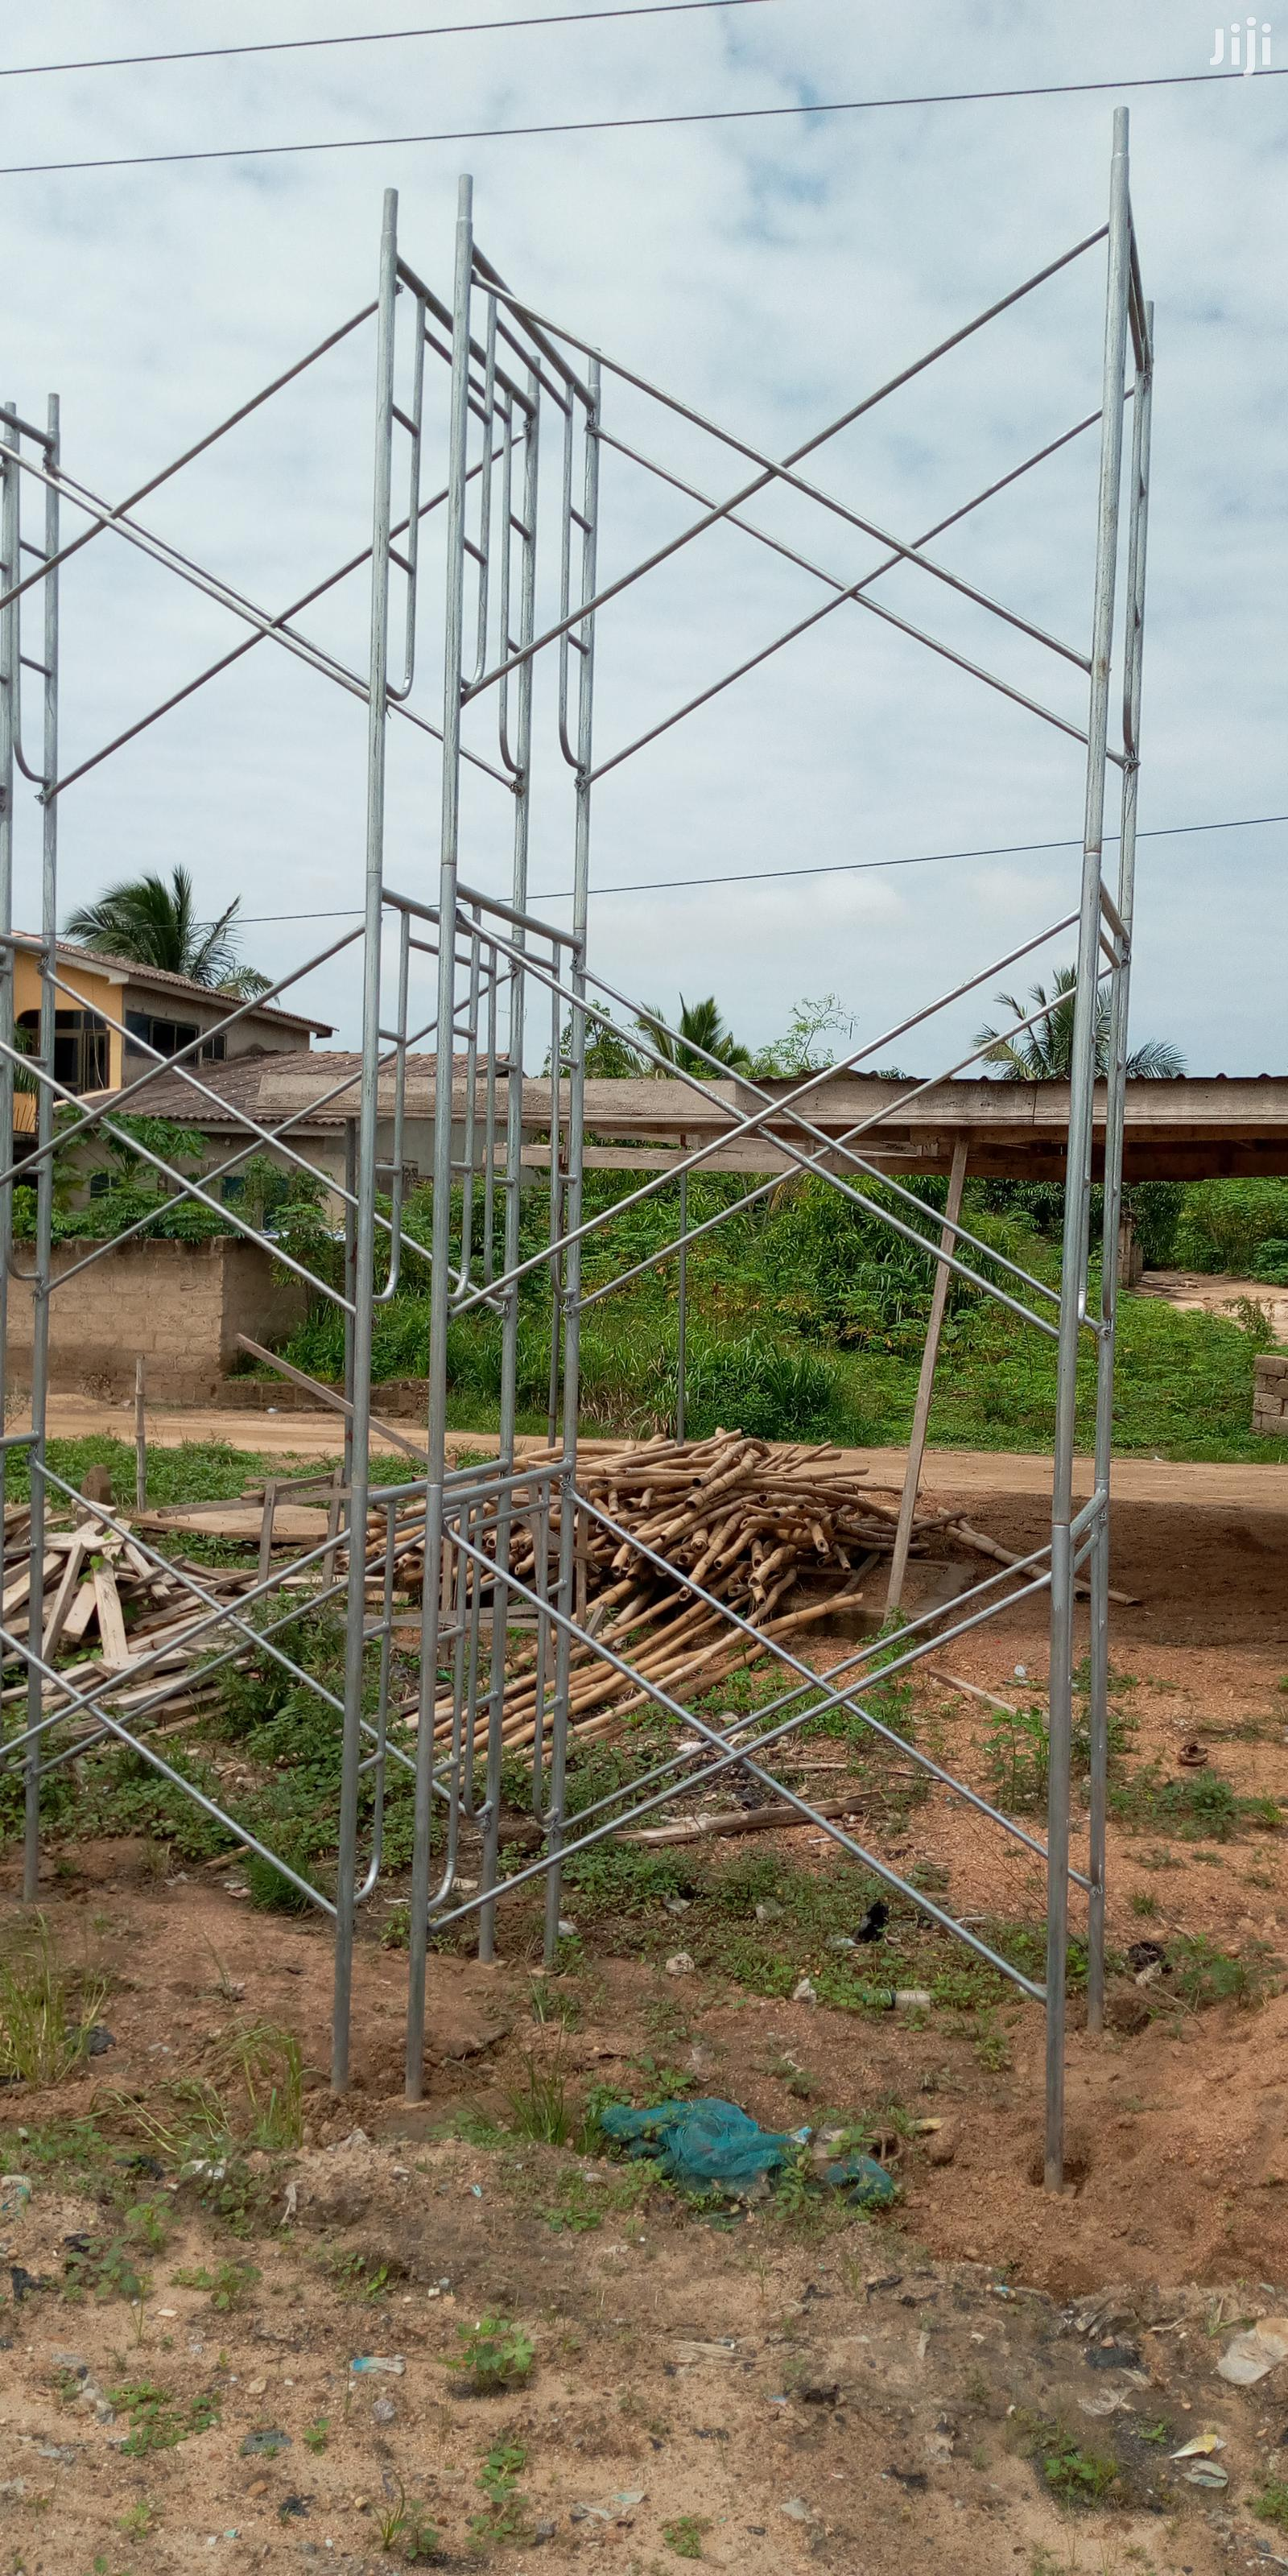 Scaffolding 18 Feet | Other Repair & Construction Items for sale in Gomoa East, Central Region, Ghana